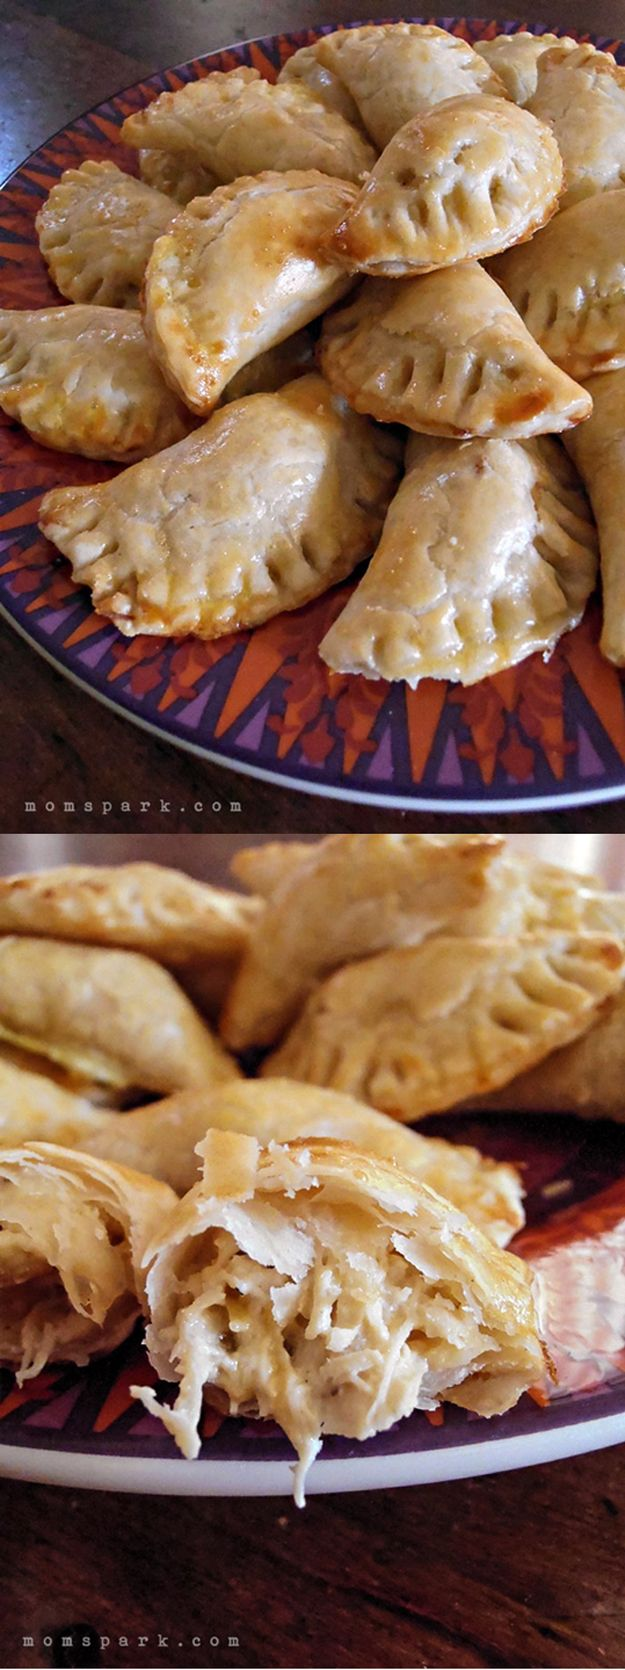 Chicken and Green Chili Empanadas Recipe | Fun and Easy Cinco de Mayo Recipes by DIY Ready at http://diyready.com/23-cinco-de-mayo-recipes-to-get-the-party-started/                                                                                                                                                      More